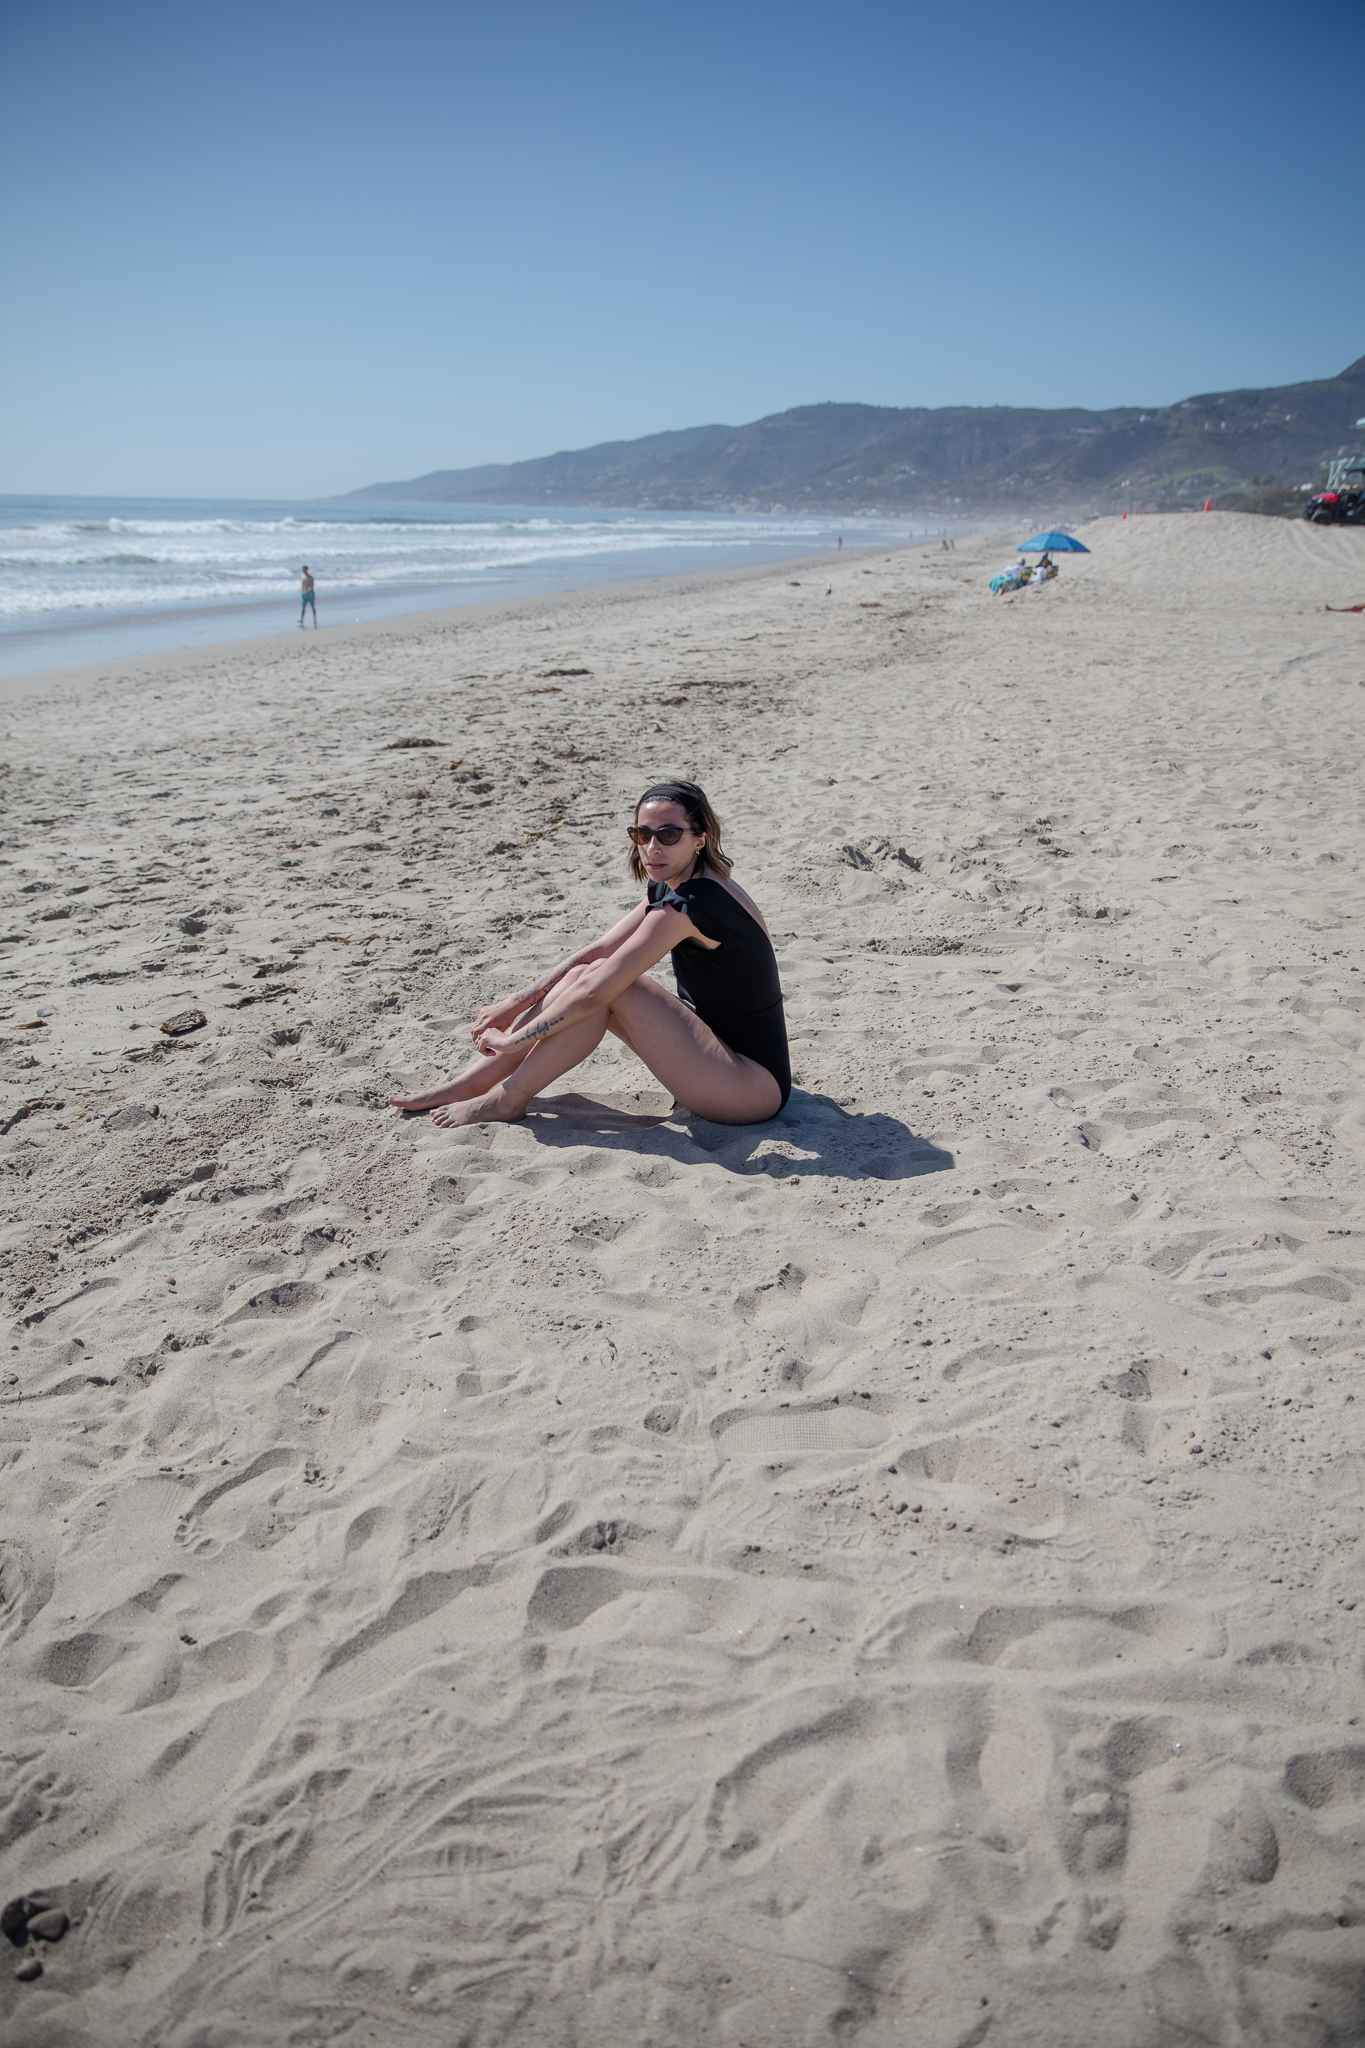 Randa_Salloum_malibu_beach_beth_richards_one_piece